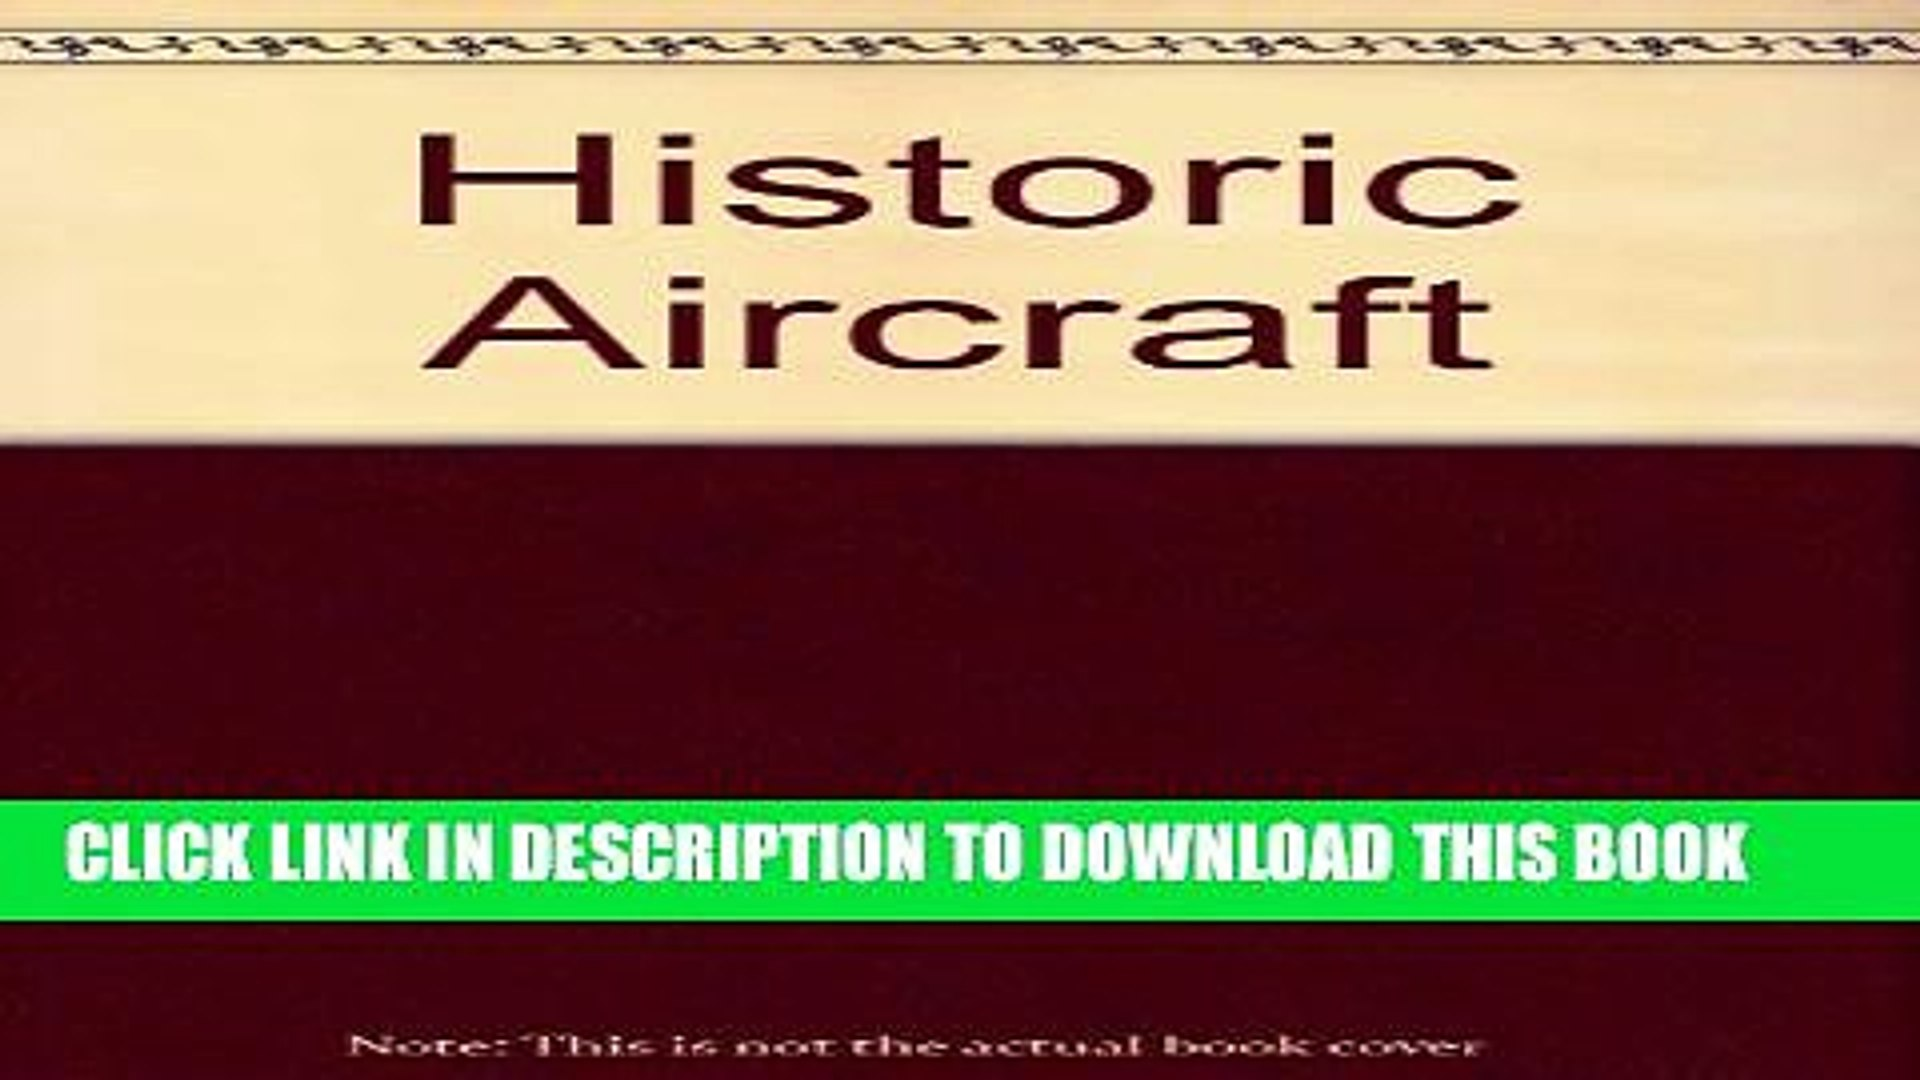 [PDF] Historic Aircraft: Collections of Famous and Unusual Aircraft Around the World Popular Online